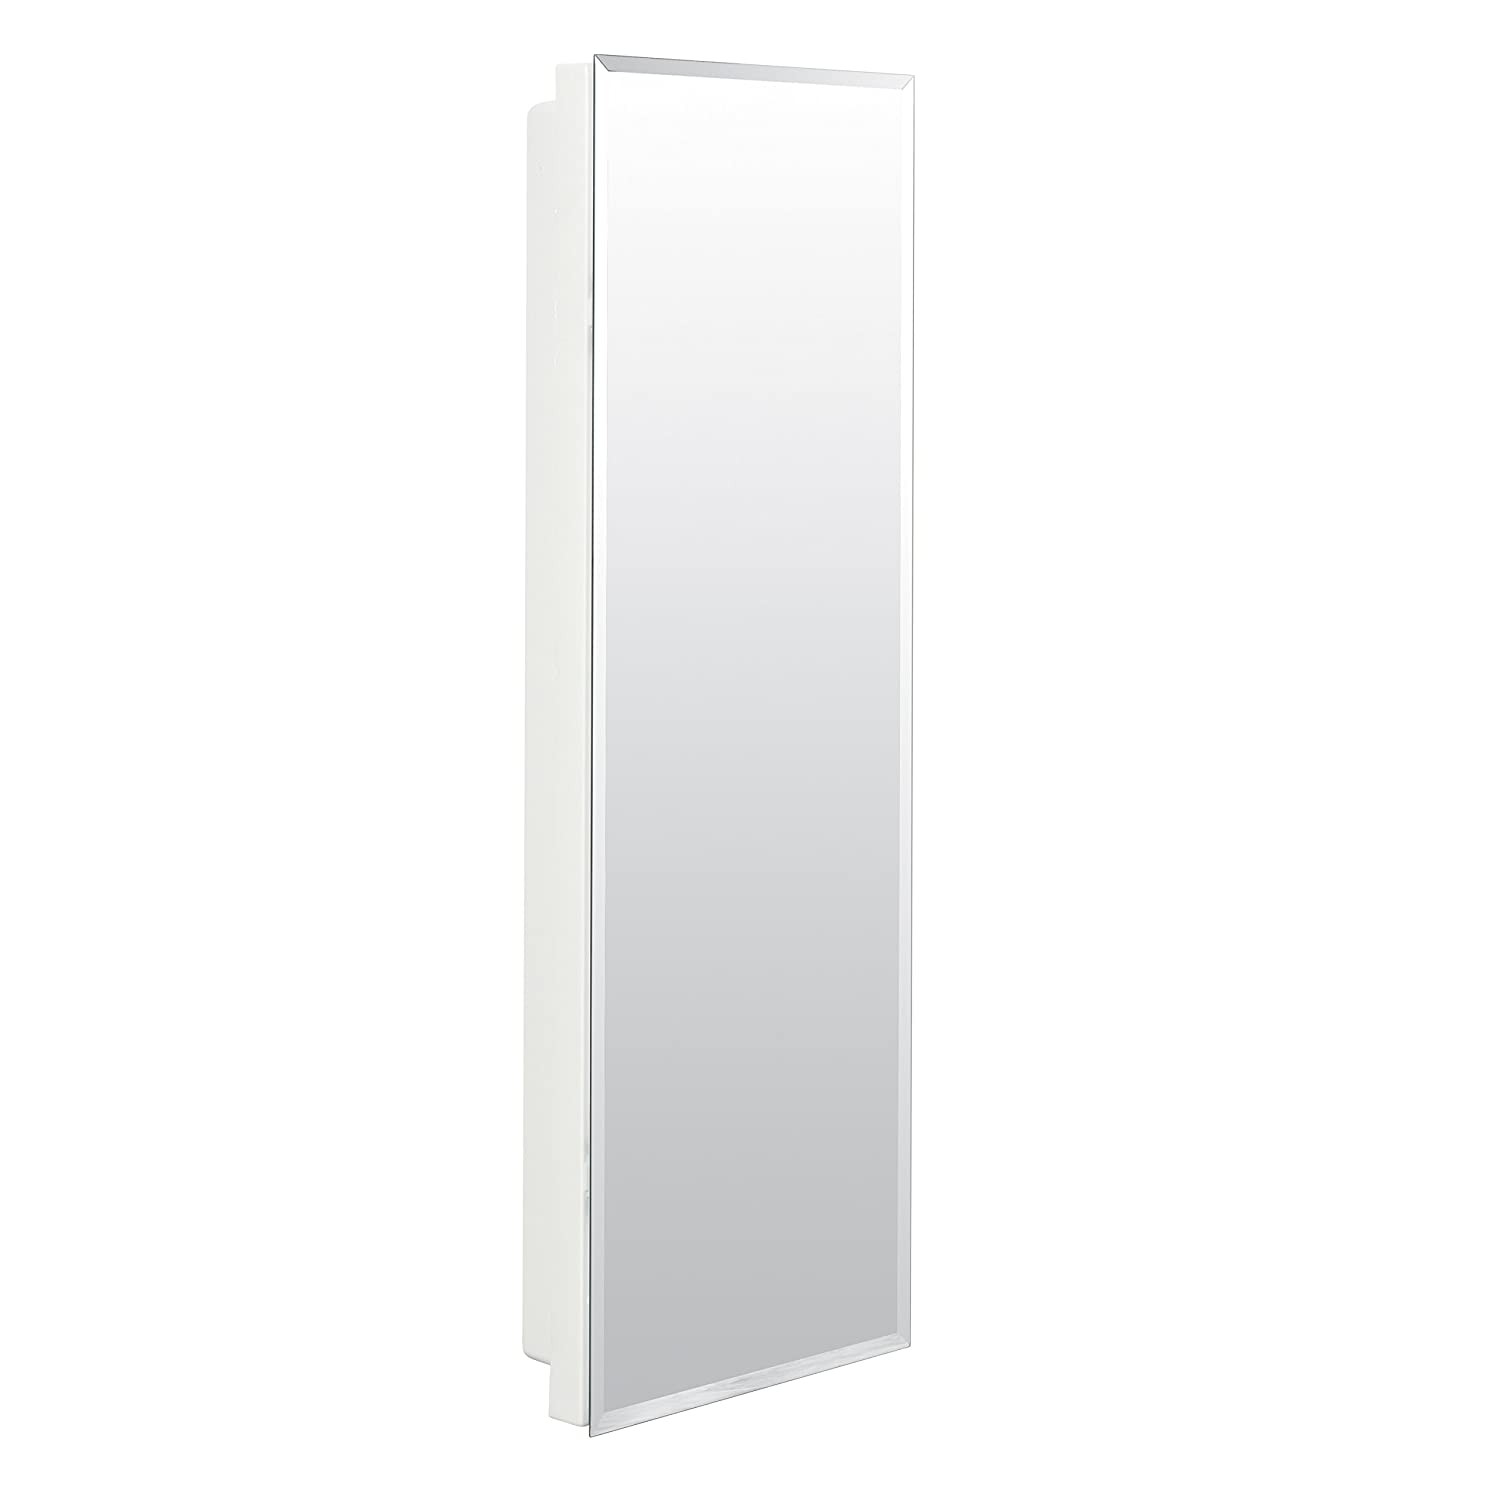 x surface white storage cabinet rectangle bathroom com verdera in pl kohler aluminum recessed medicine cabinets at lowes shop mirrored